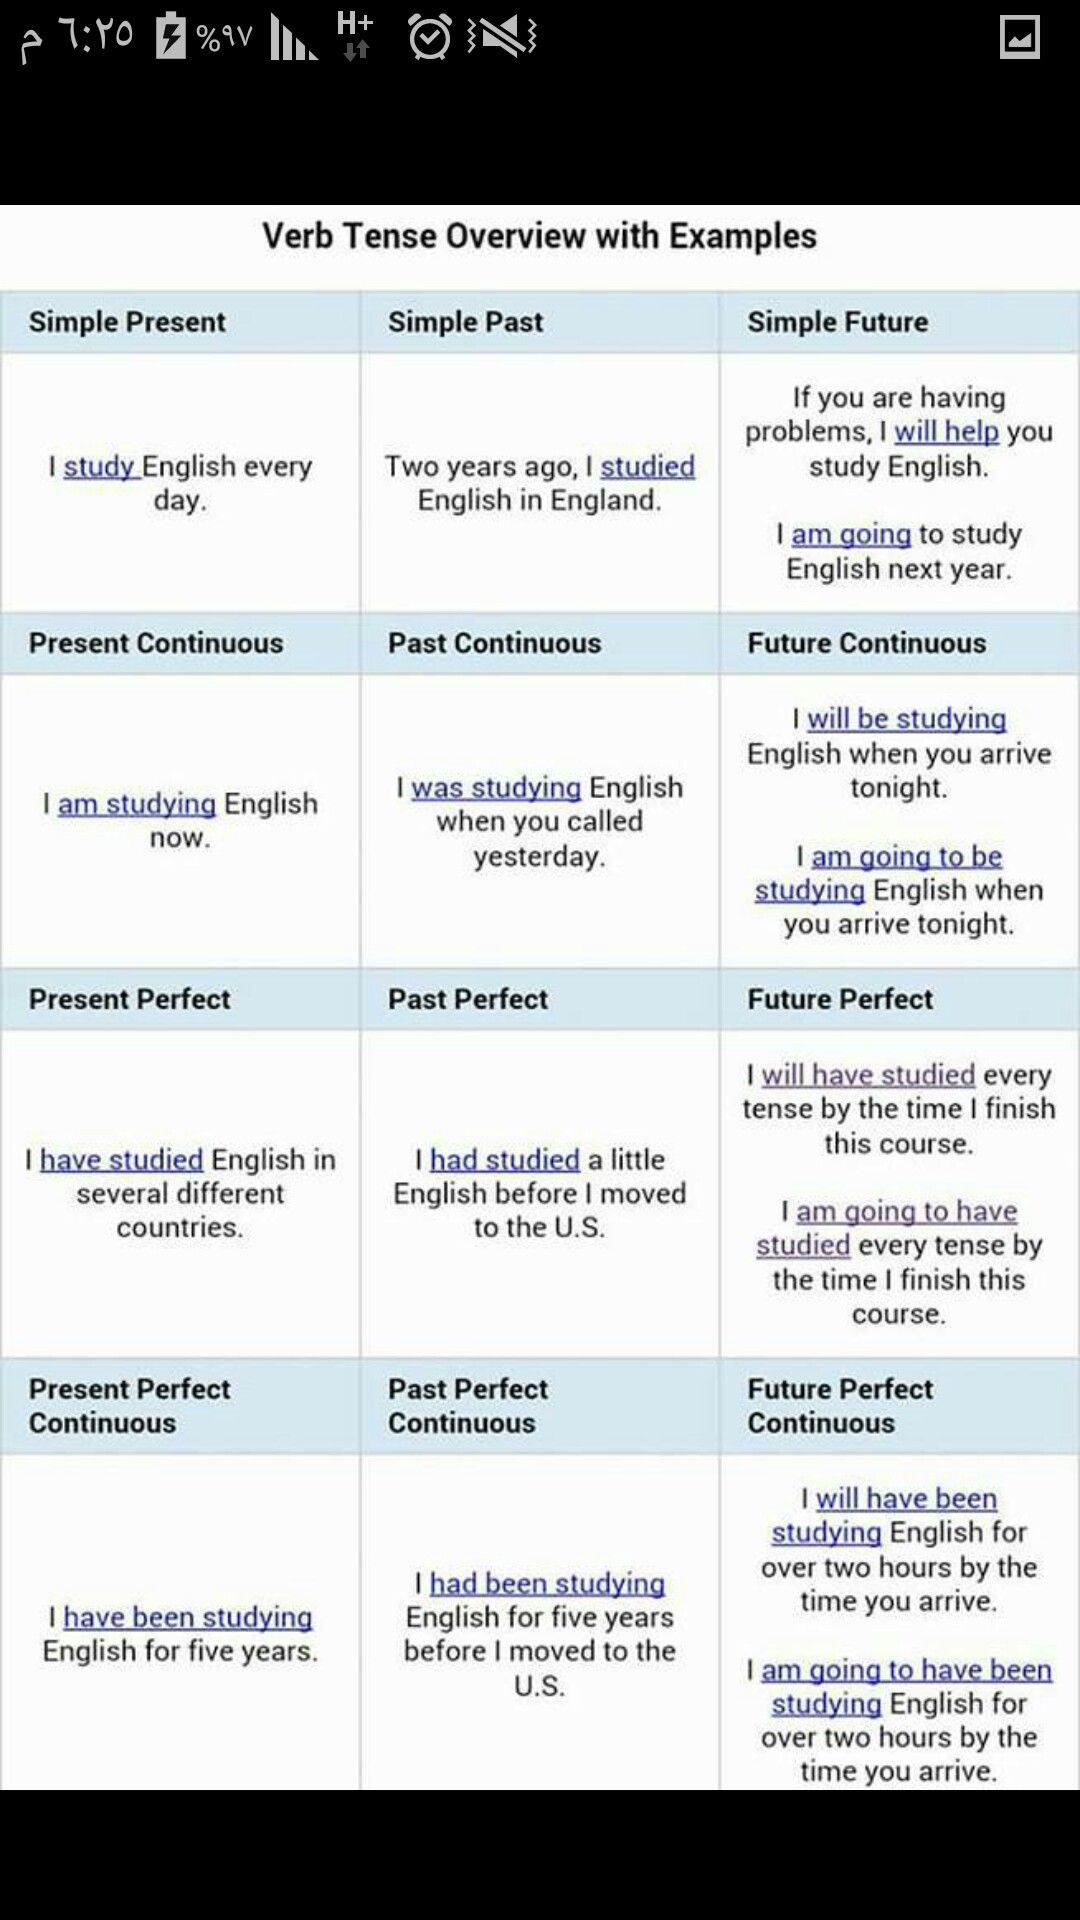 Language acquisition verb tenses english grammar lessons learning ielts idioms life hacks class also tense rules formula chart with examples rh pinterest